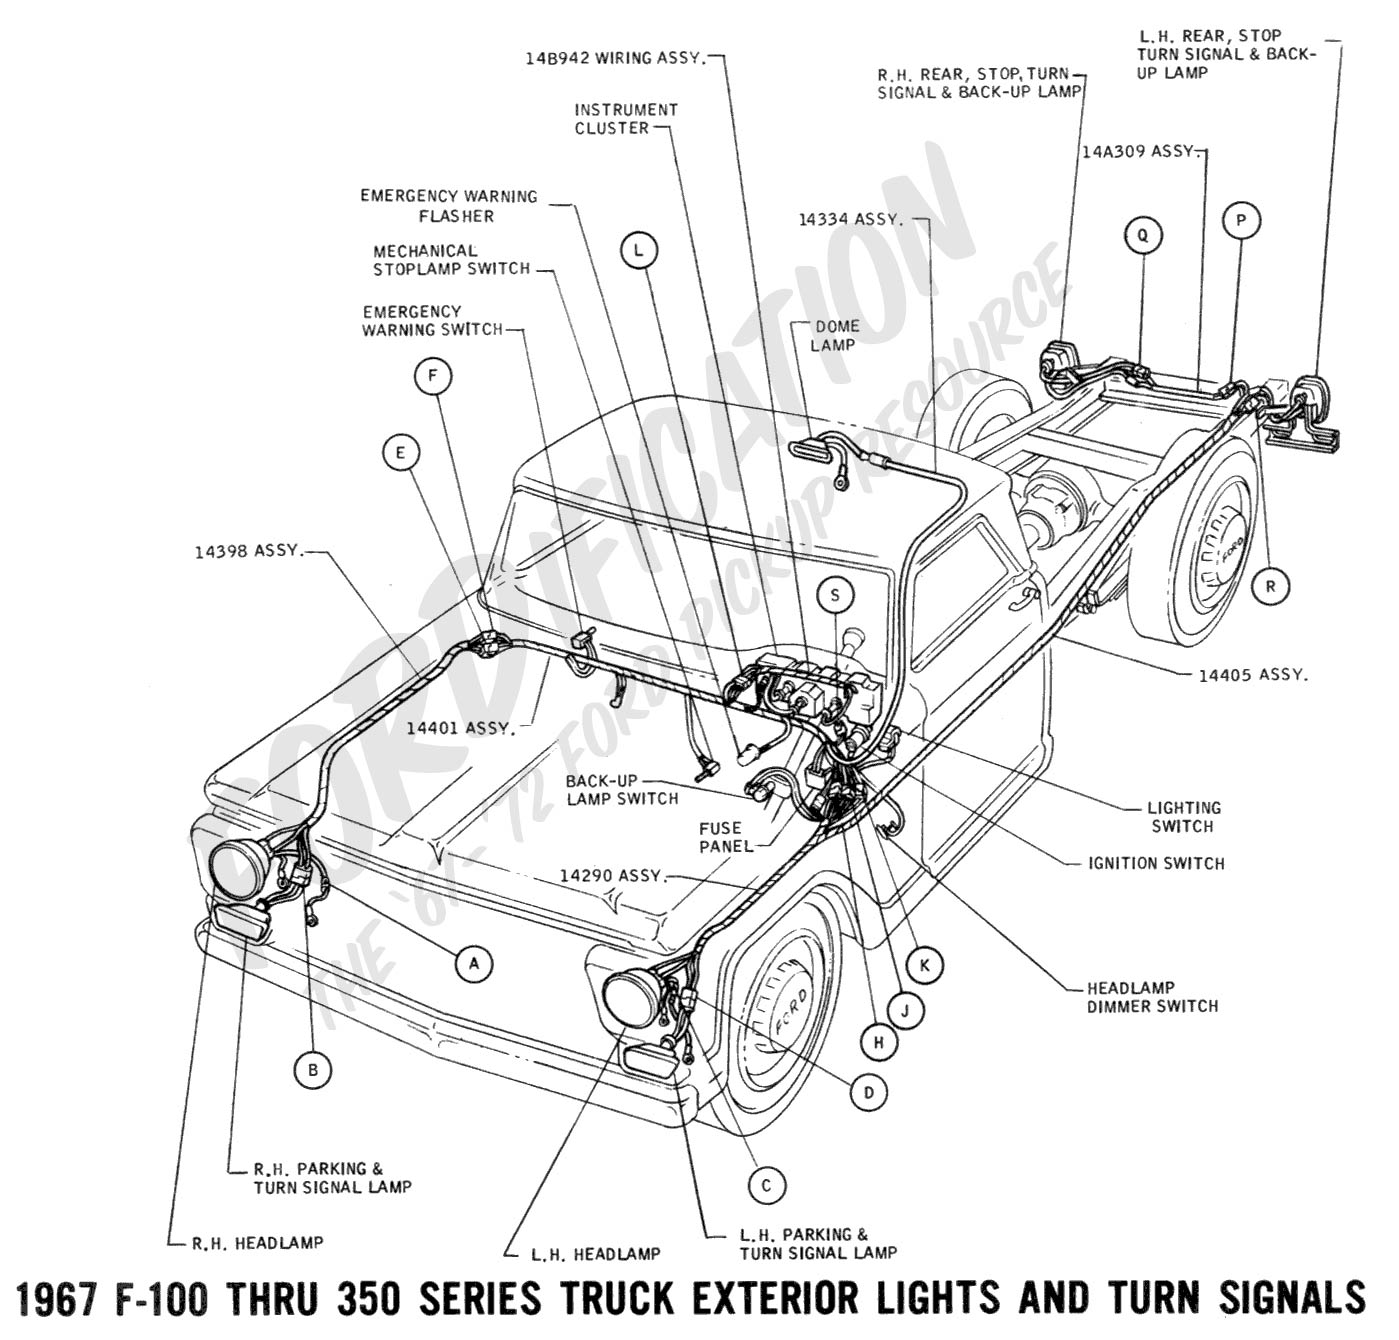 wiring 1967extlights01 ford truck technical drawings and schematics section h wiring 2002 Ford Explorer Wiring Harness at gsmportal.co